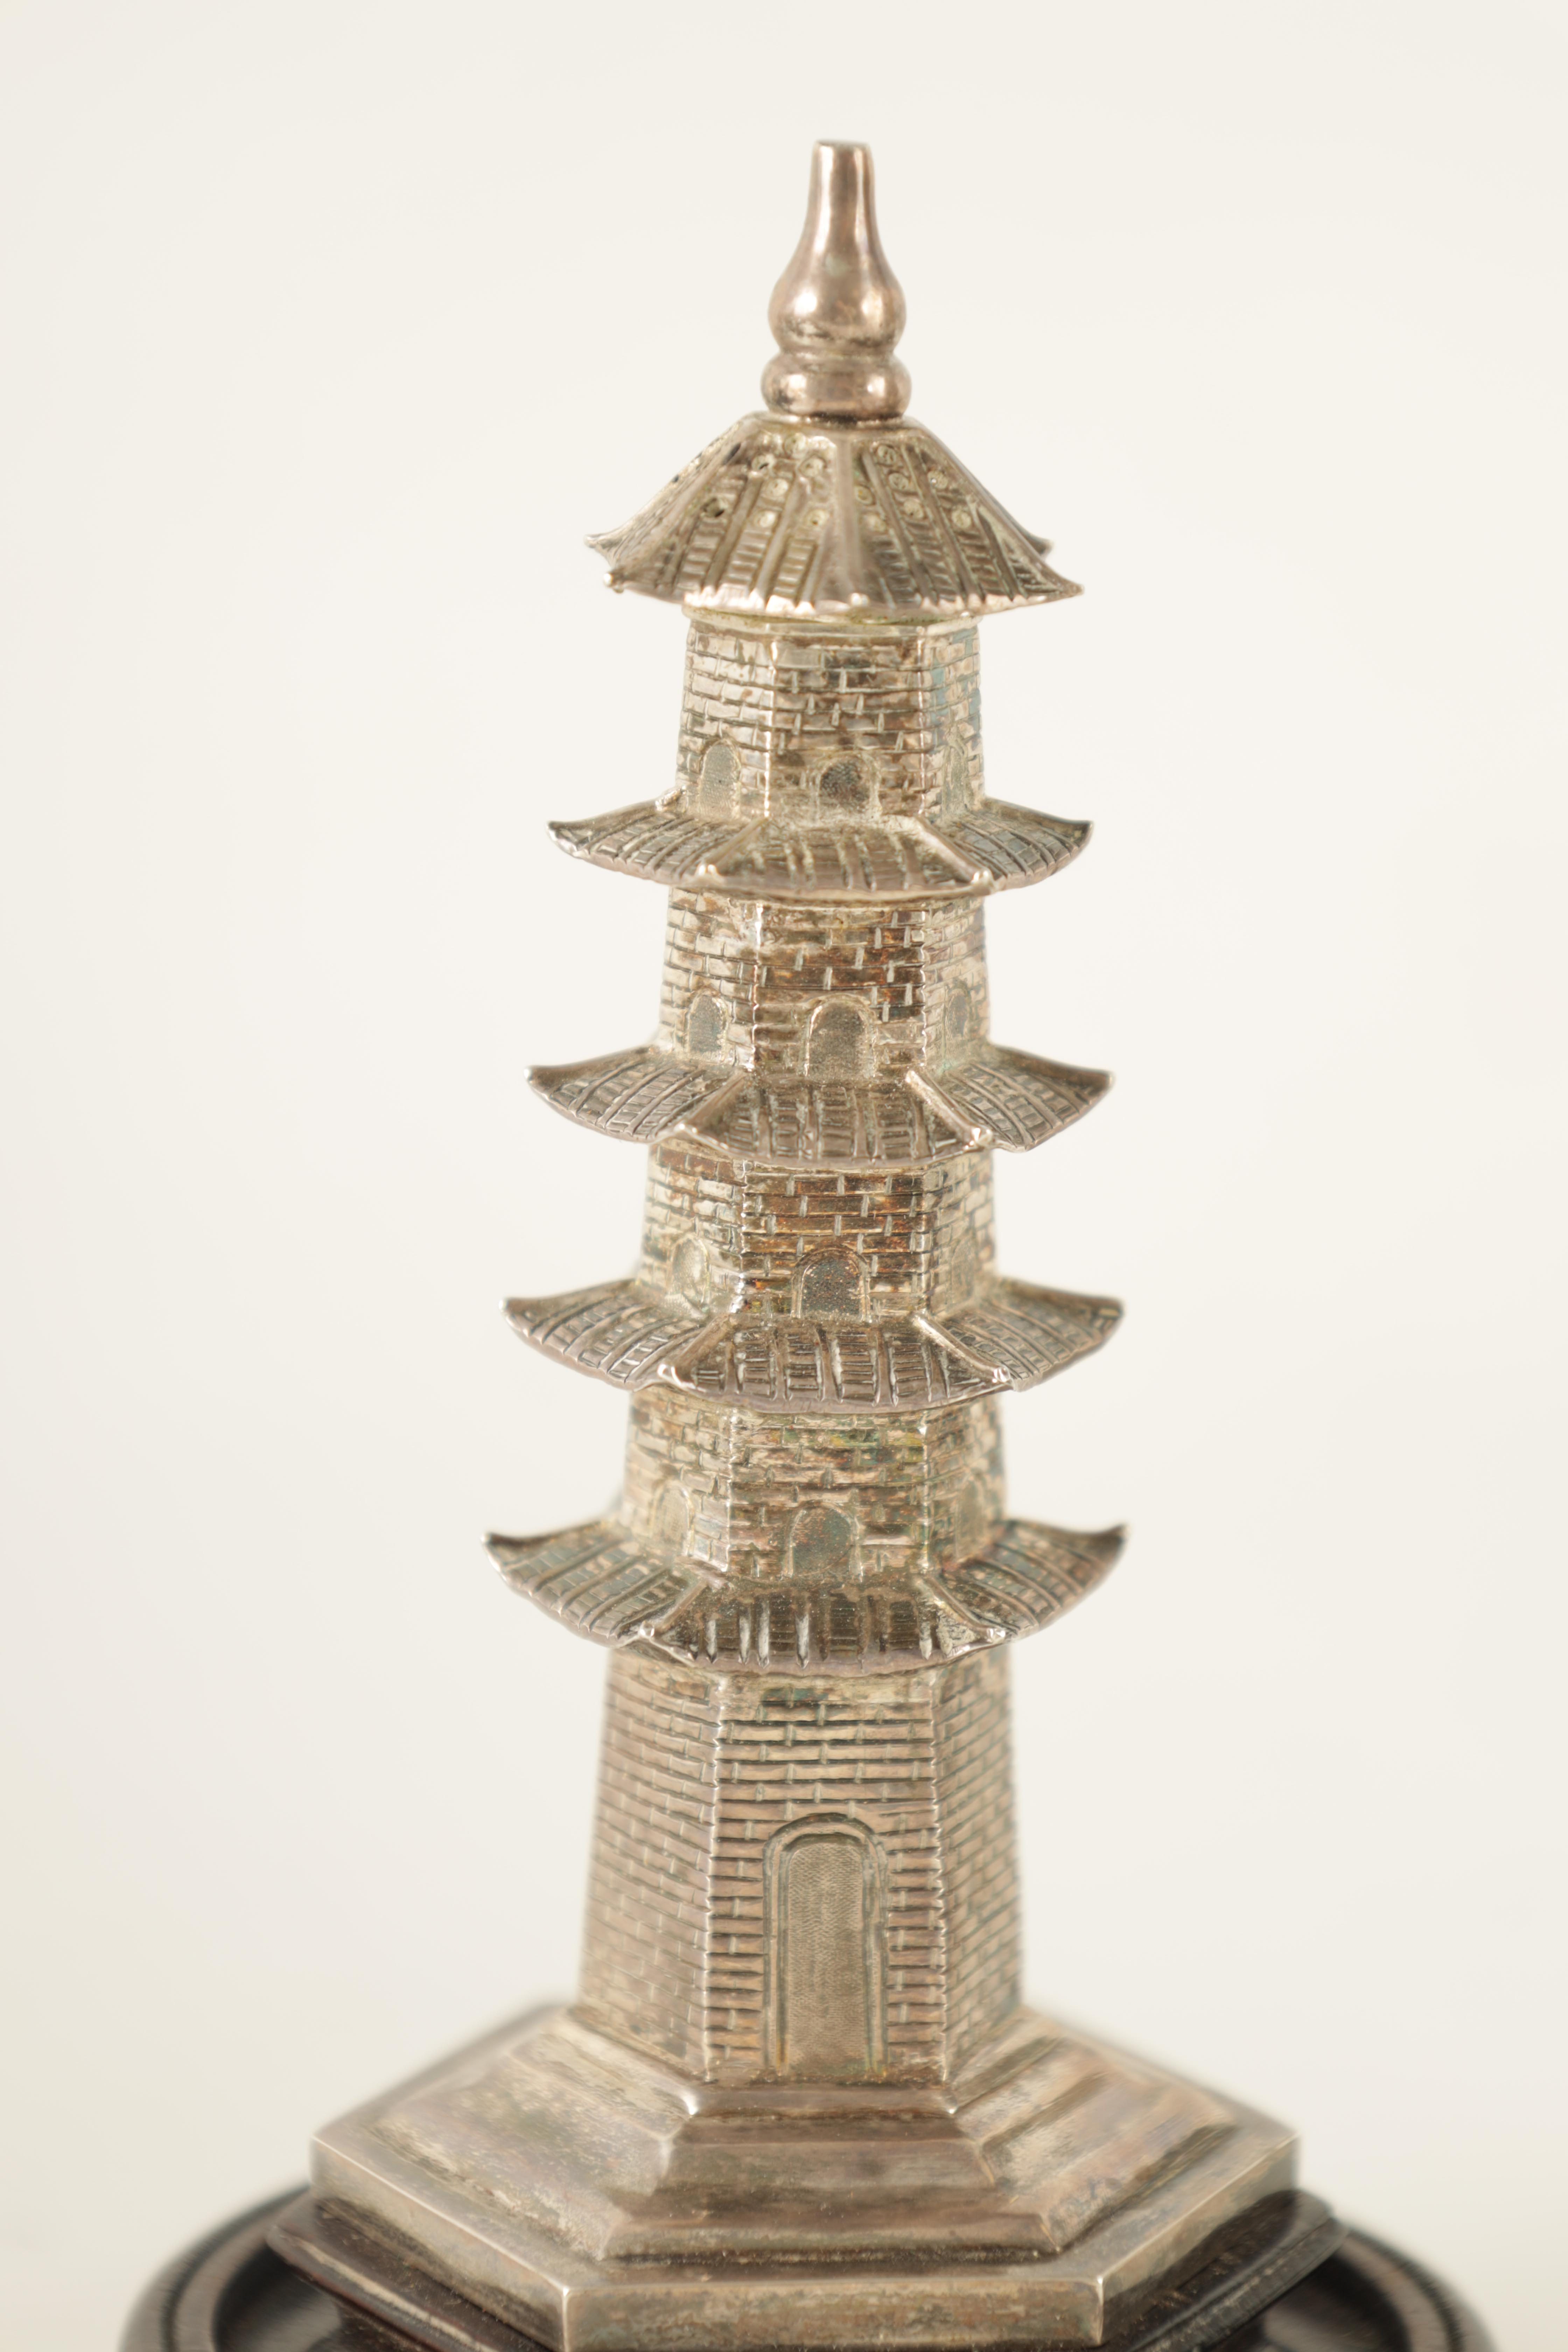 TWO 19TH CENTURY CHINESE SILVER MODELS comprising a pagoda-shaped tower on a hardwood base 13.5cm - Image 2 of 6